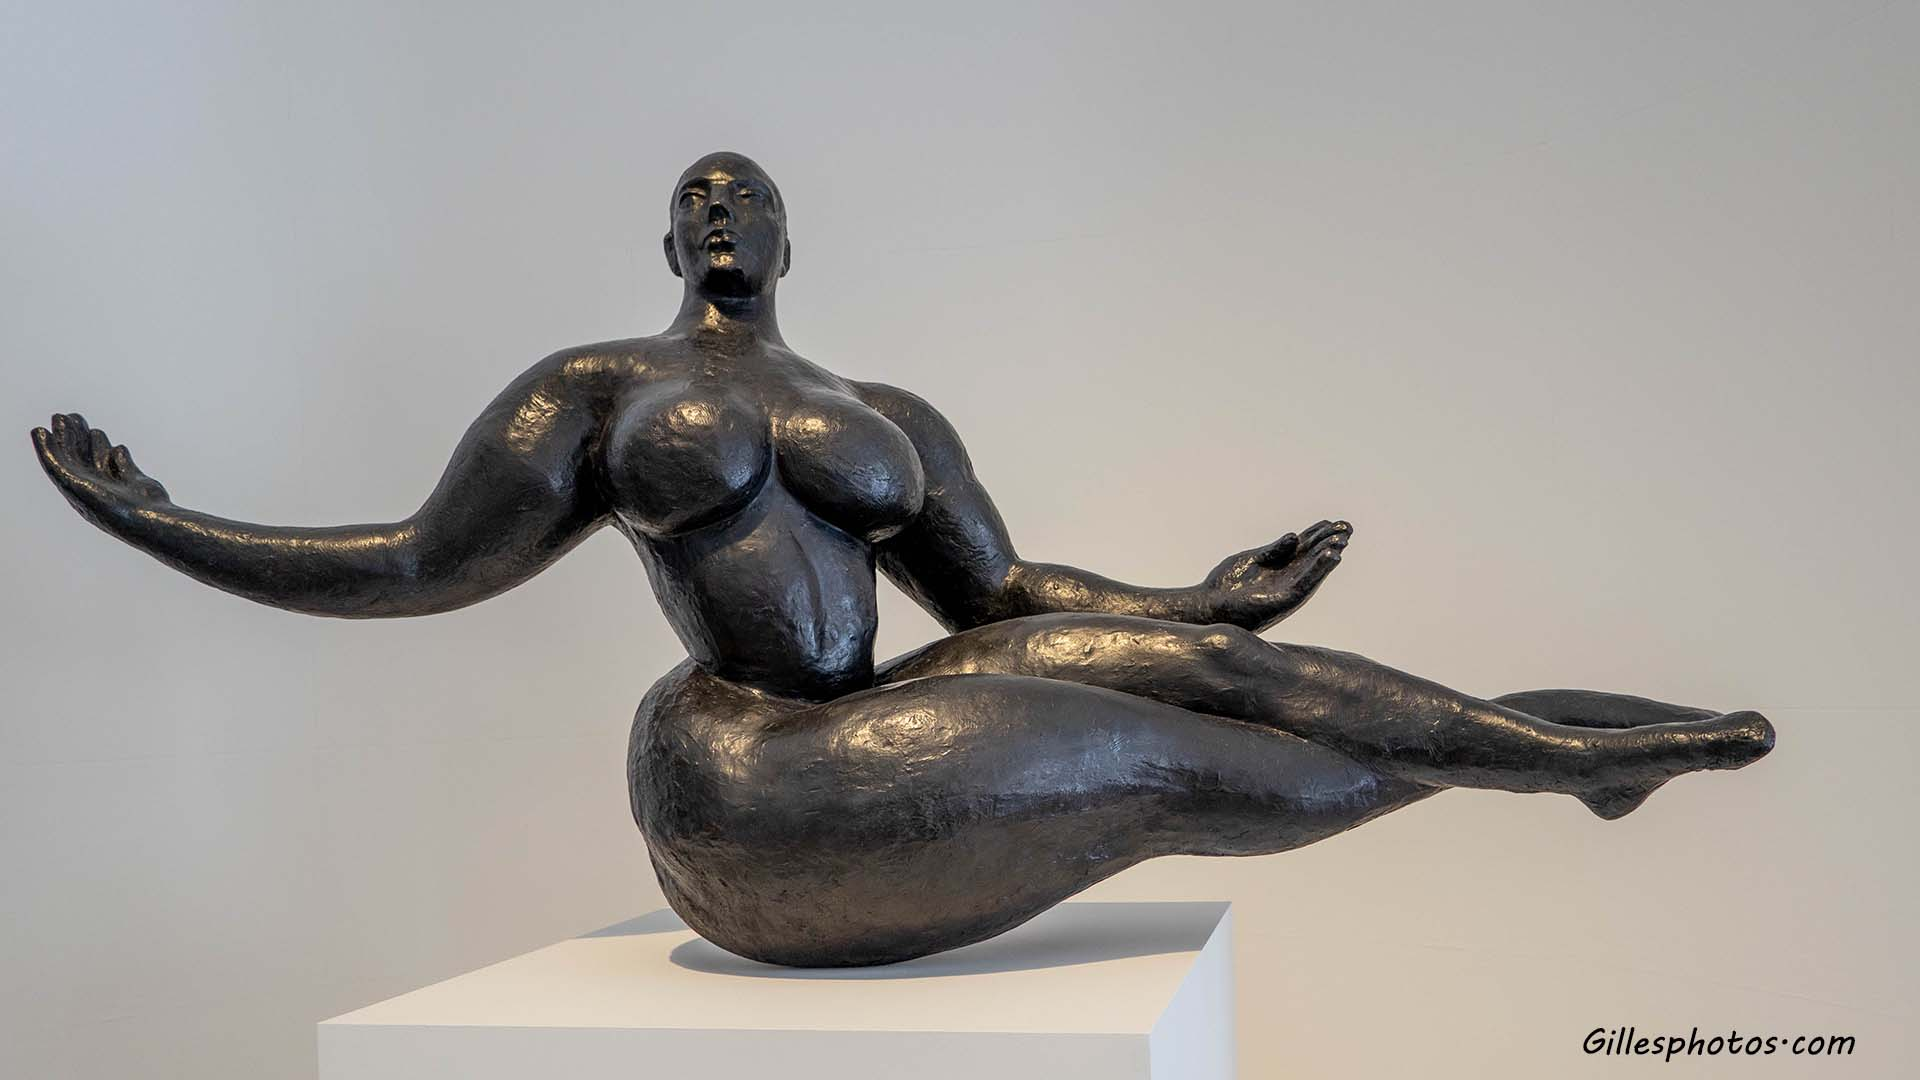 Photos Musée d'Art Moderne, Gaston Lachaise ( 1882,Paris - 1935,New York ) - Floating Woman 1927 (Fonte de 2015)